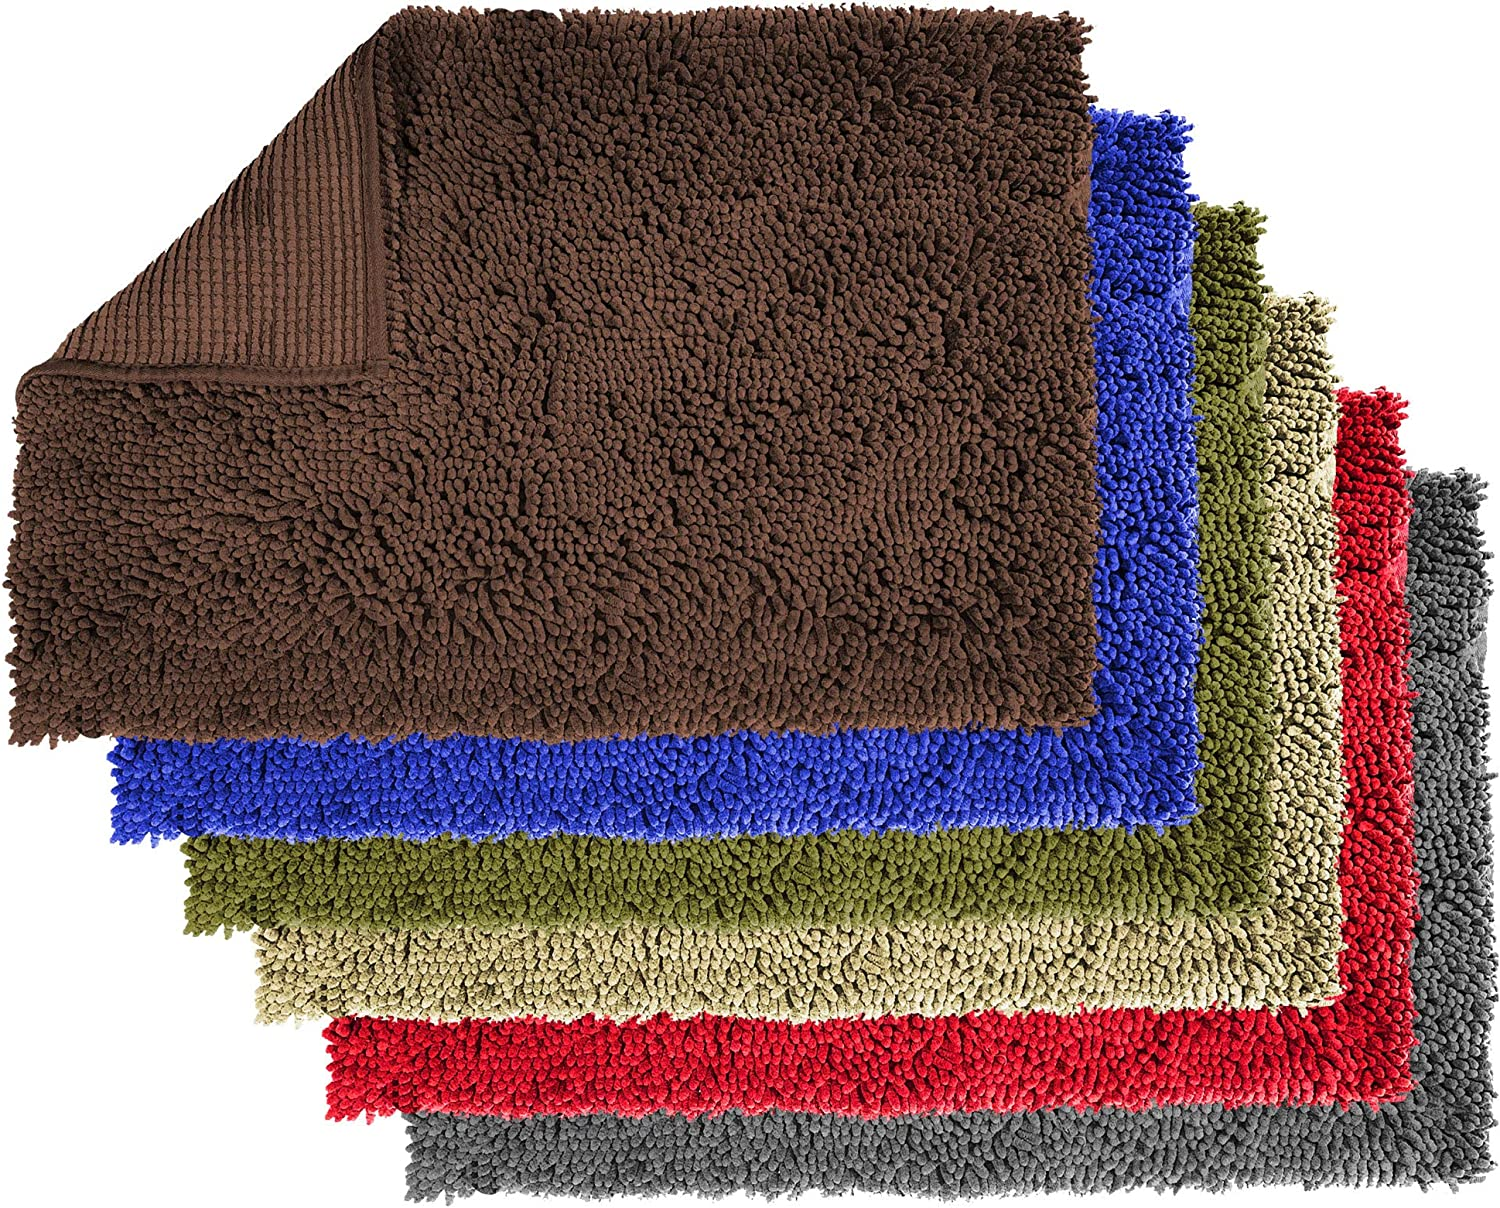 Enthusiast Gear Dog Mud Door Mat Ultra Absorbent Microfiber Chenille Non Slip Doormat Dog Bowl Floor Mat Crate Rug No More Dirty Dogs With Muddy Paws Washable